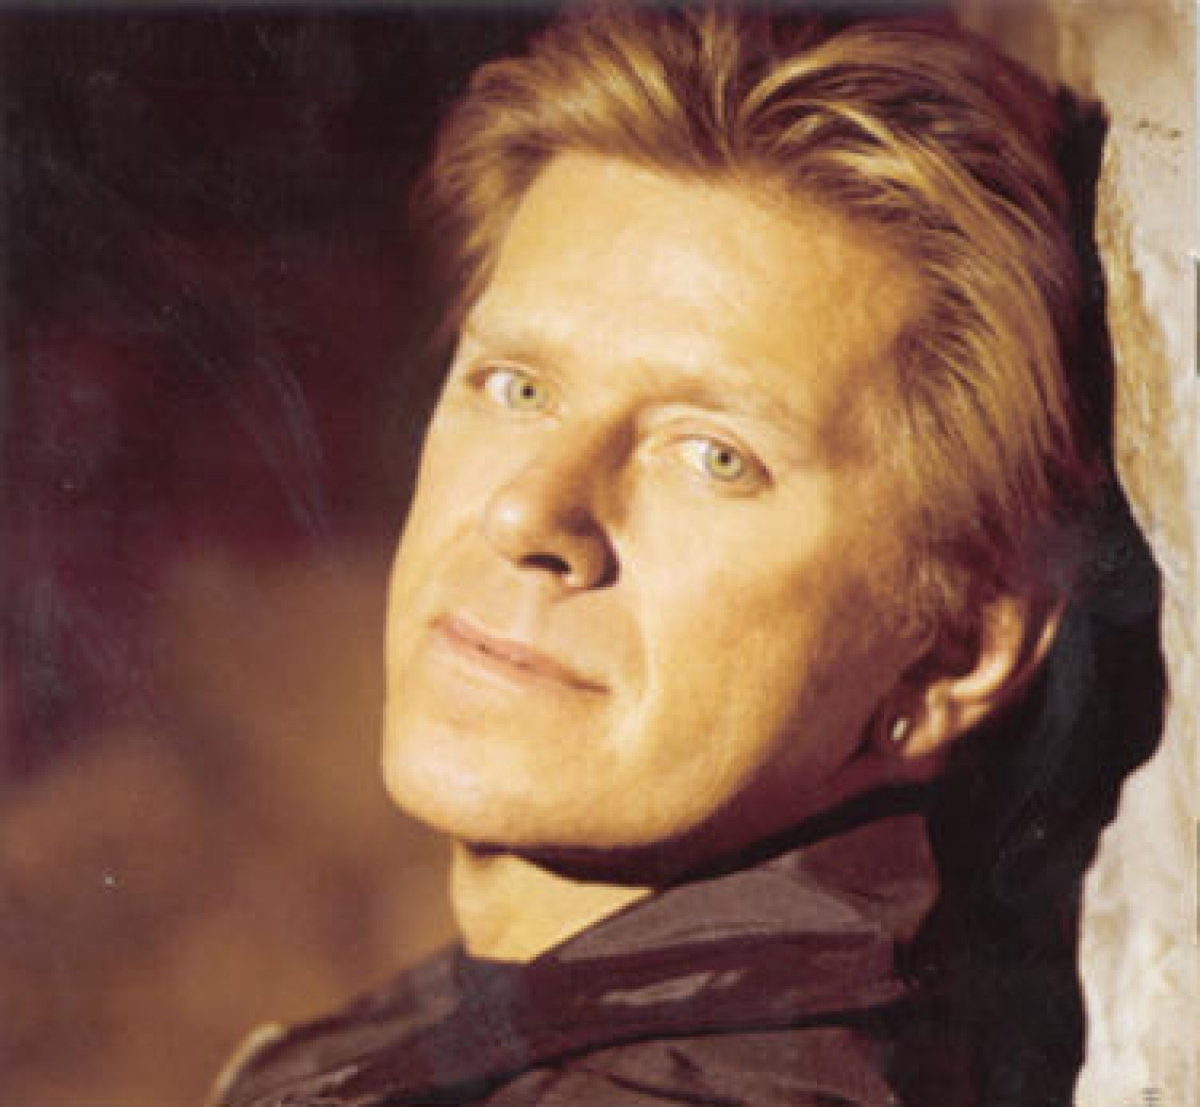 Peter cetera after all that we ve been through